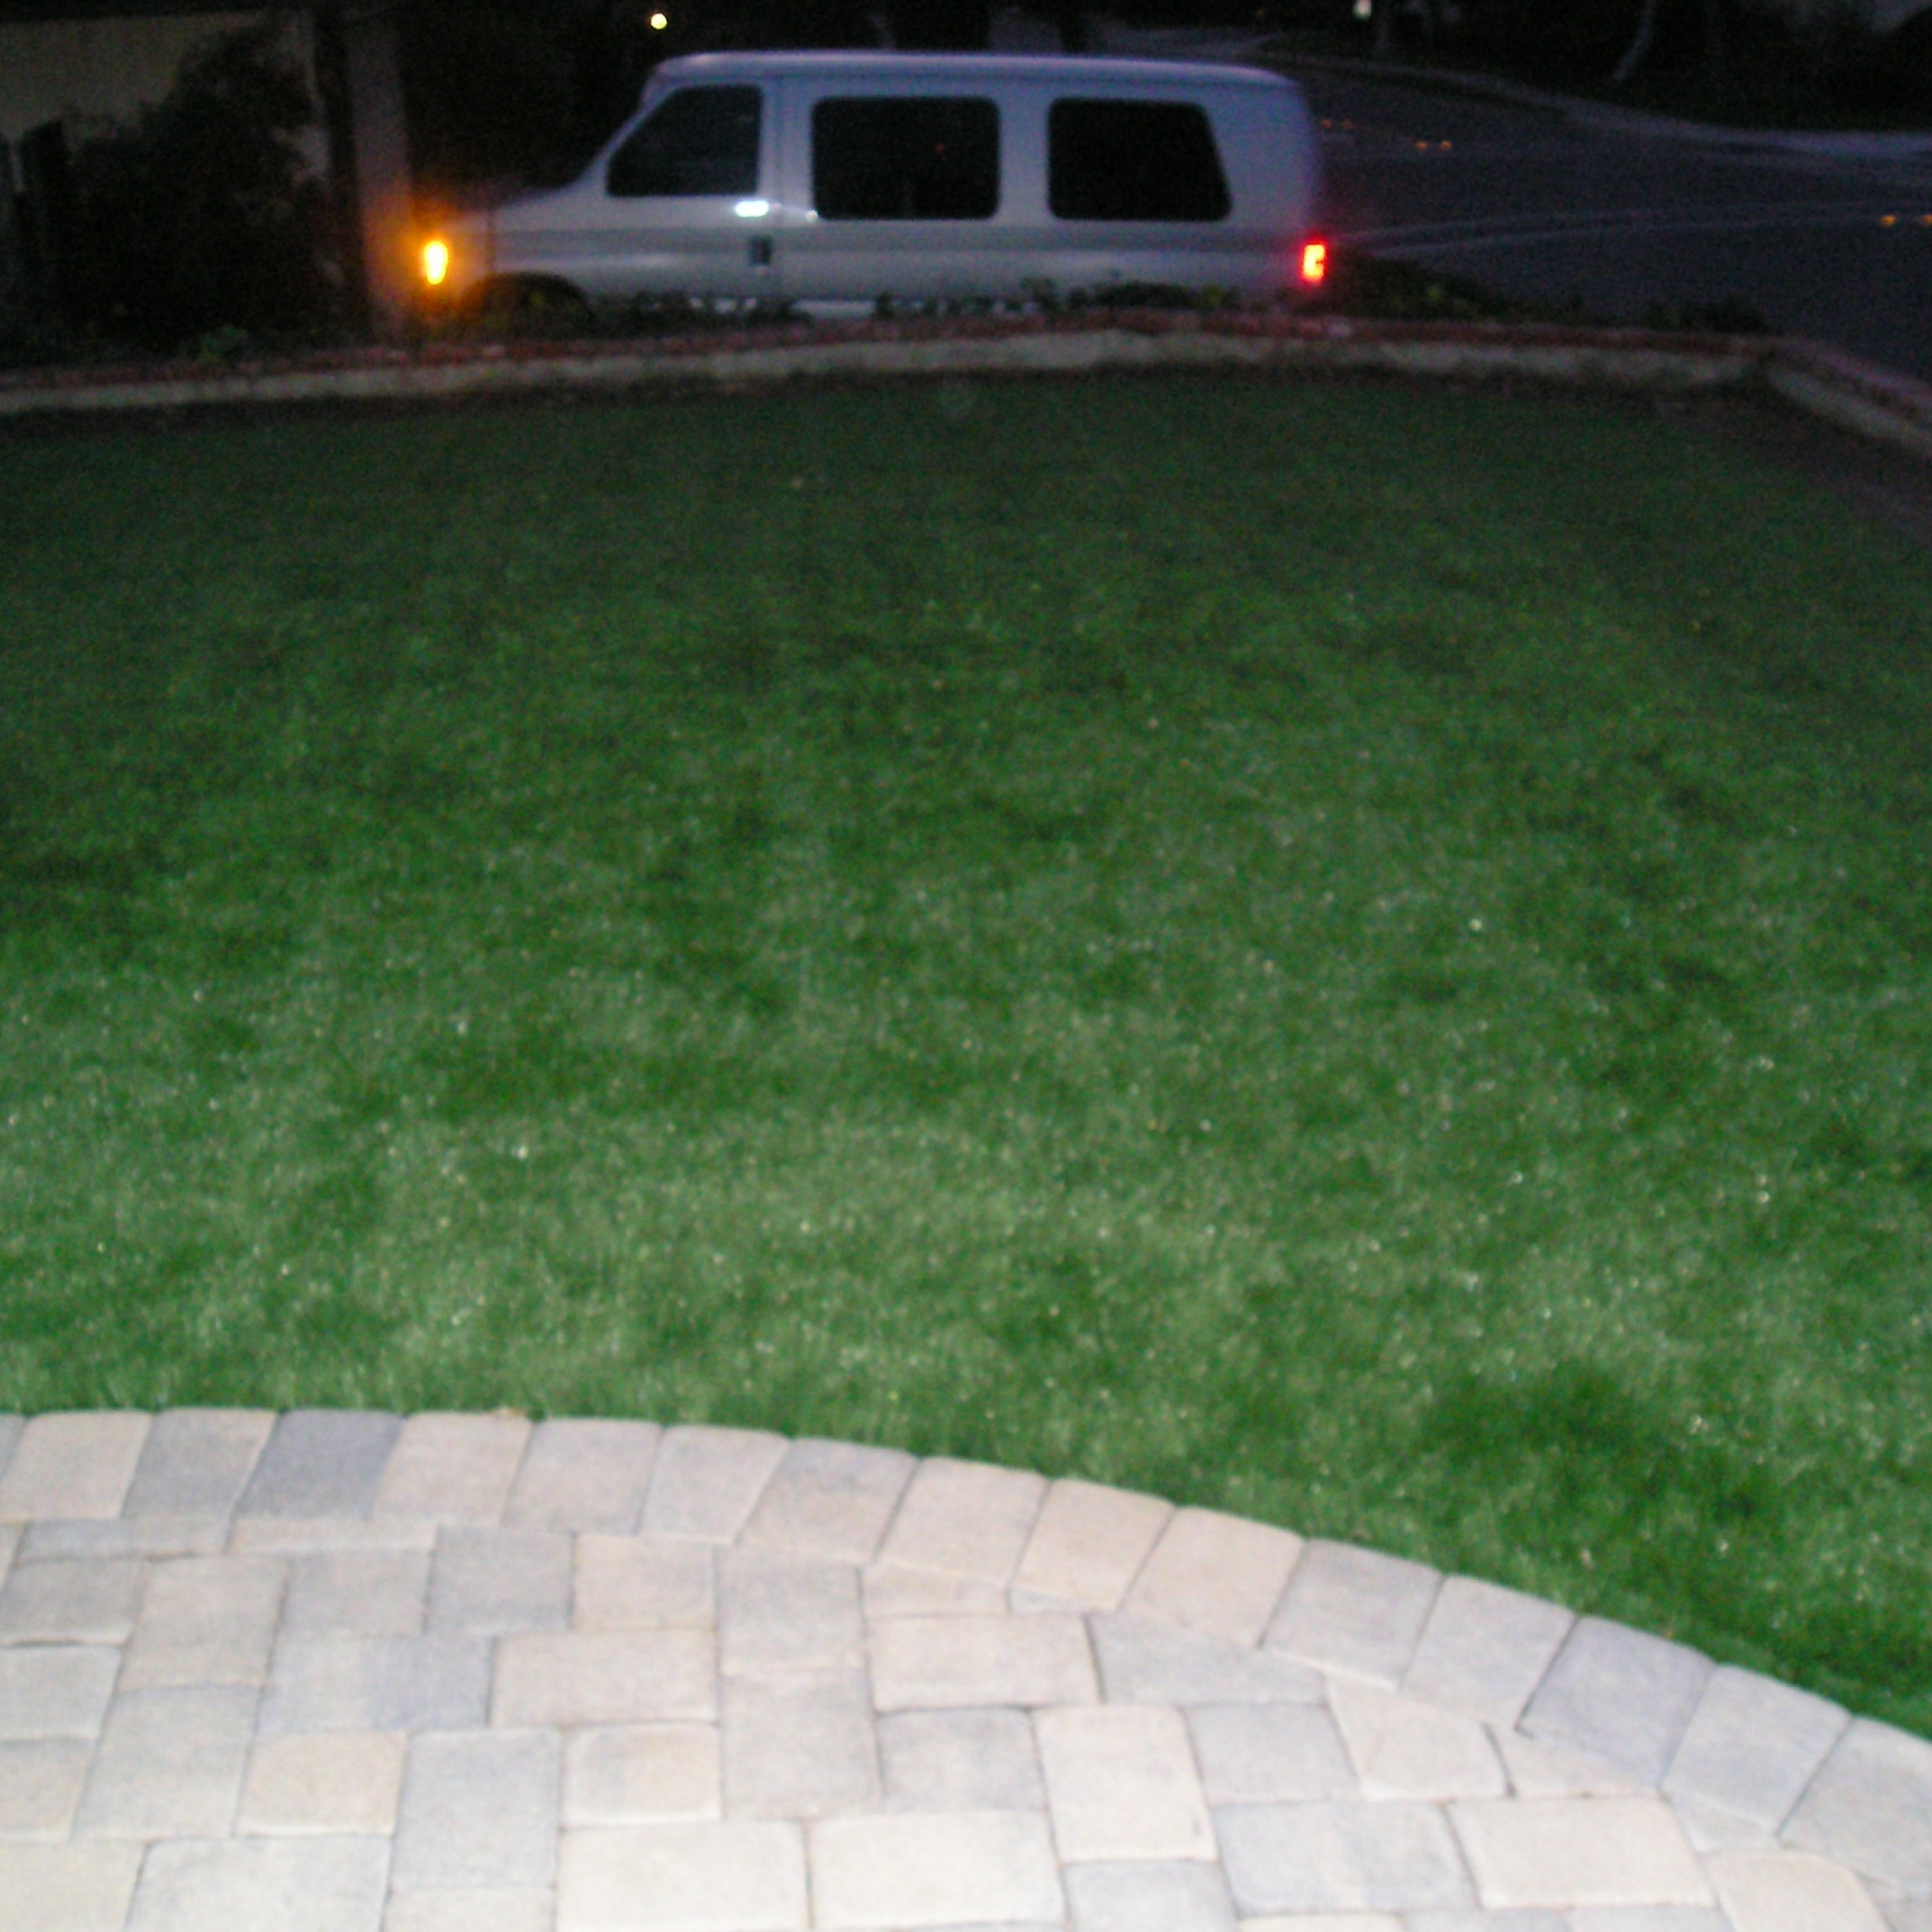 S Blade-90 best artificial grass,best fake grass,best synthetic grass,best turf,best artificial grass for home,artificial turf,synthetic turf,artificial turf installation,how to install artificial turf,used artificial turf